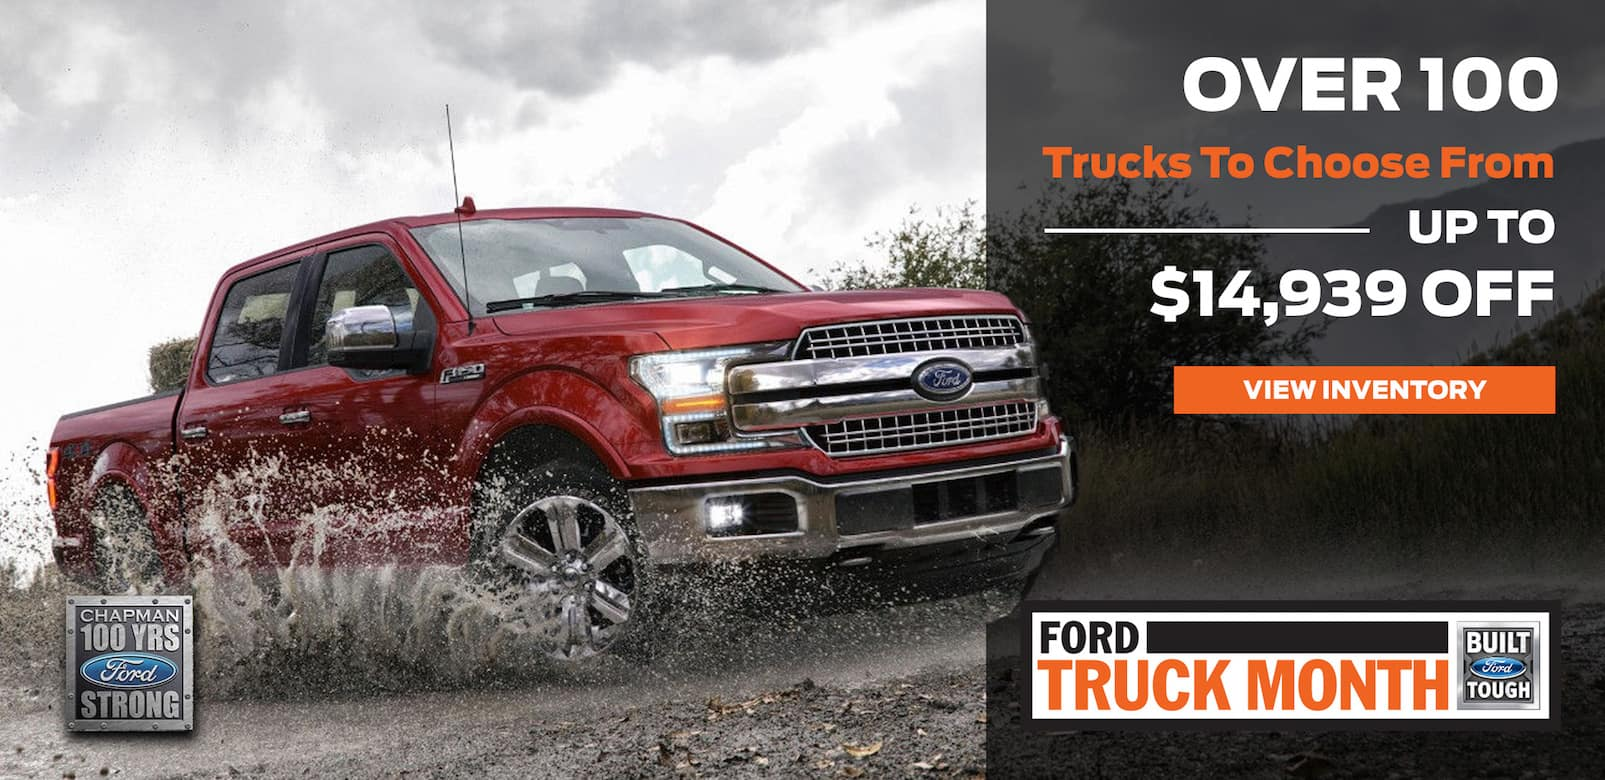 Bob Chapman Ford Home Page Truck Image